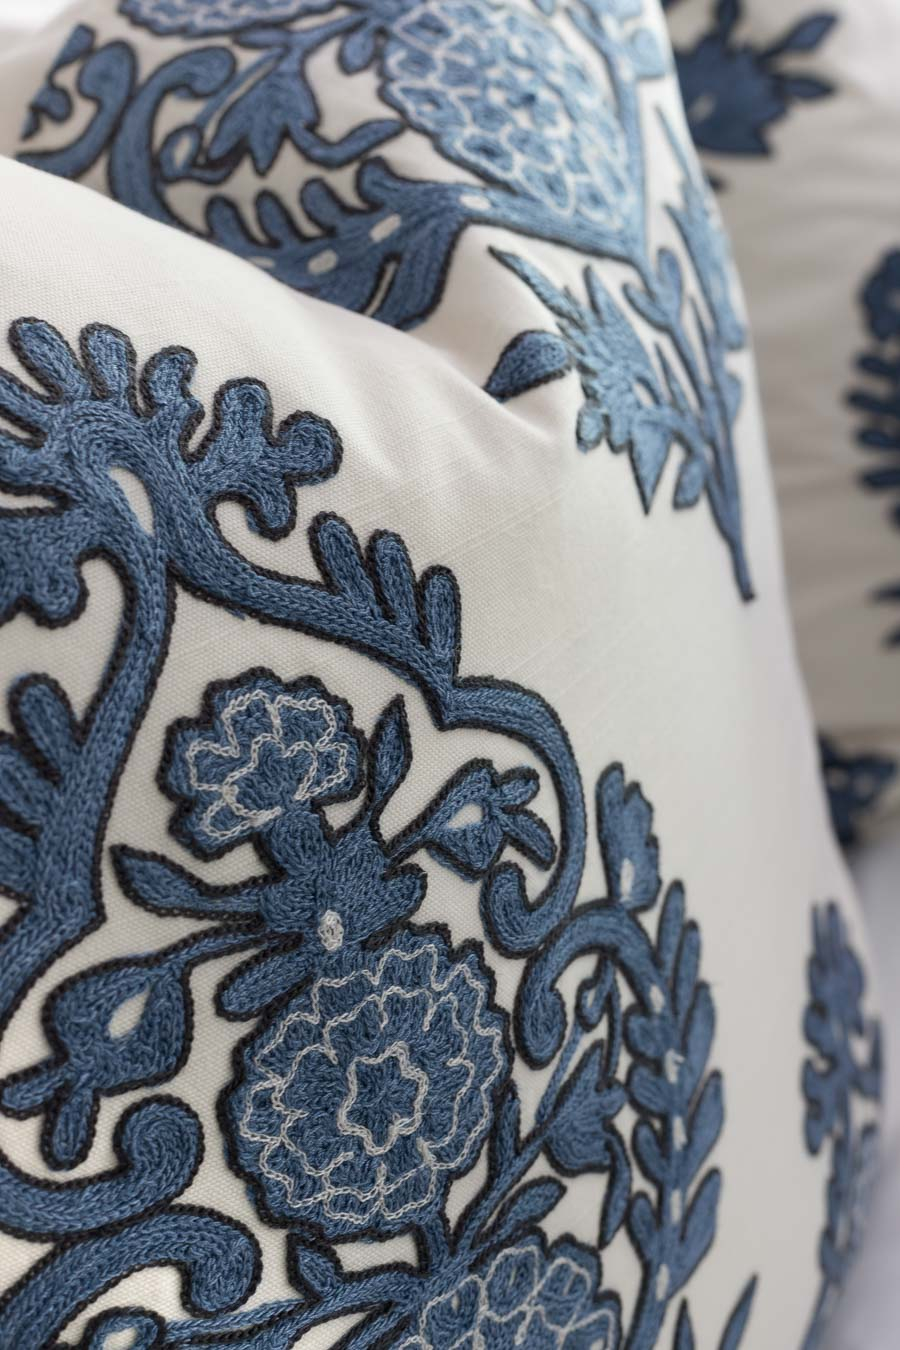 These blue and white embroidered pillow covers are gorgeous!!!